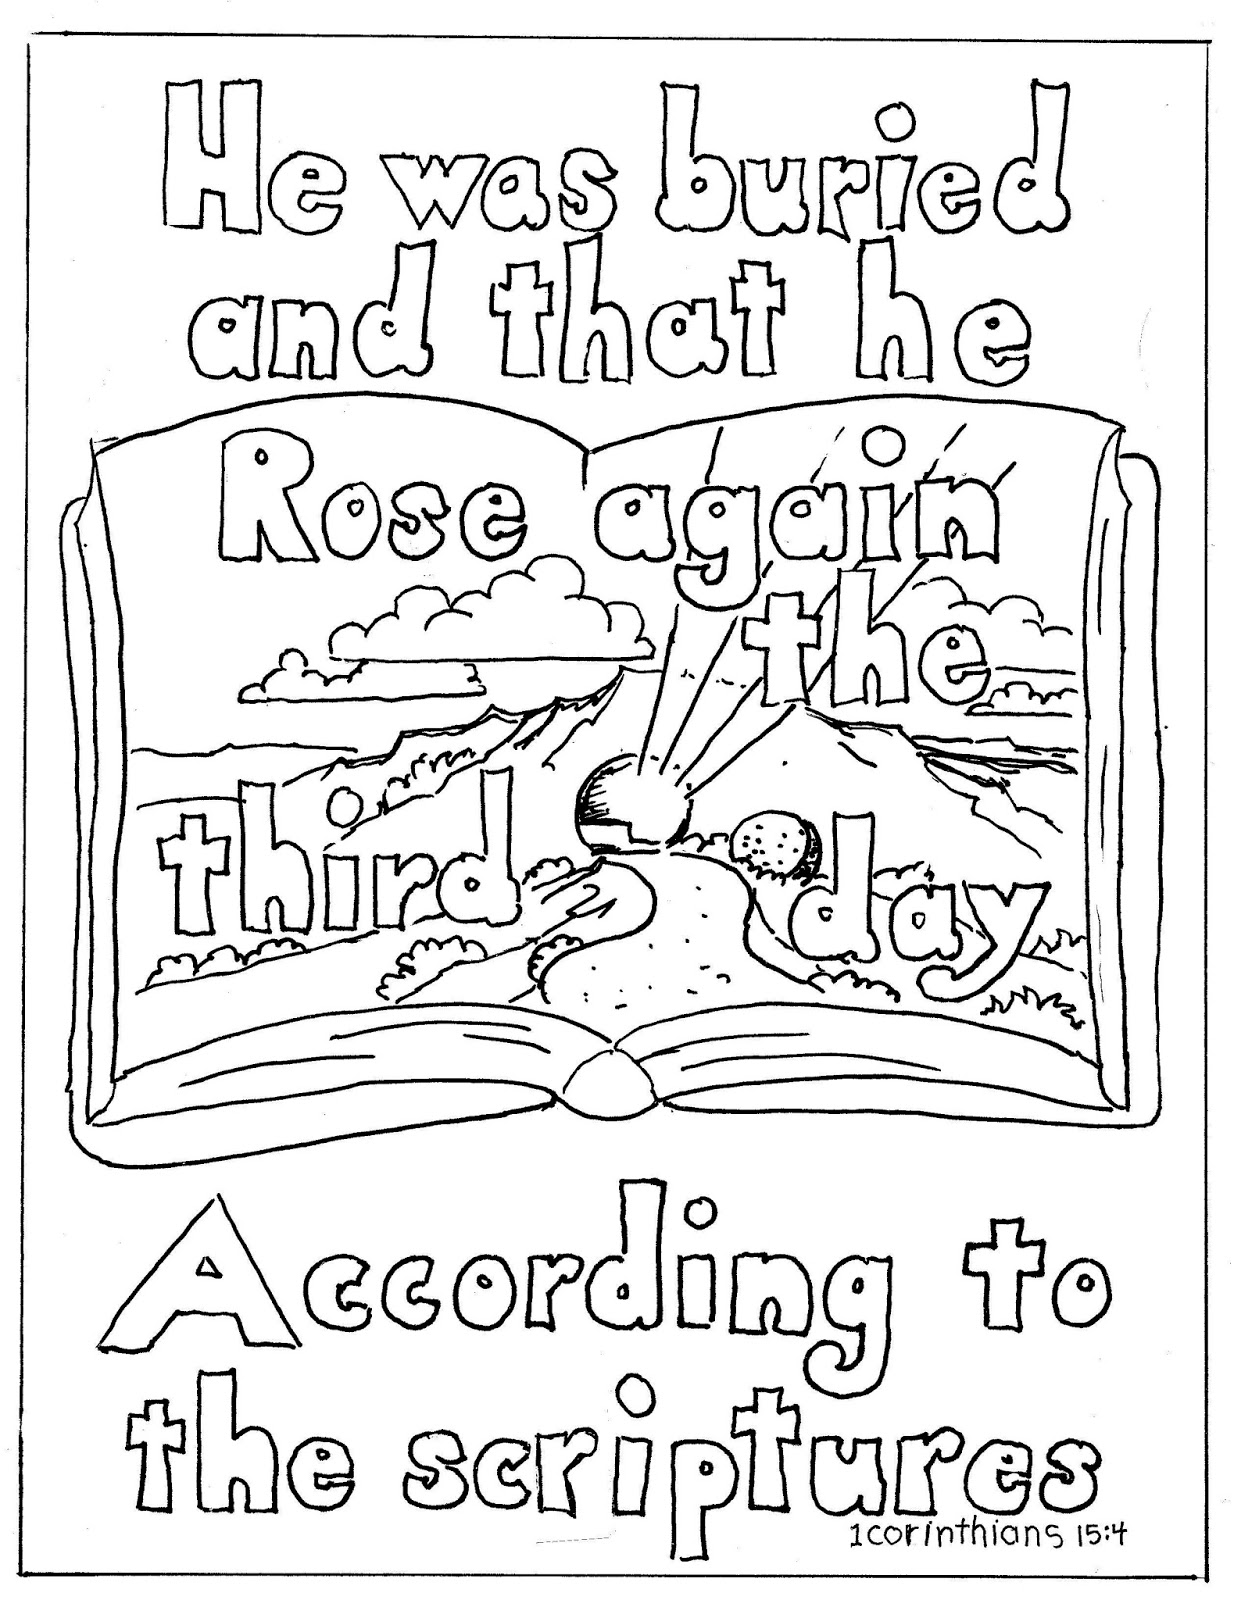 Coloring Pages For Kids By Mr Adron 1 Corinithians 15 4 Coloring Page Christ Rose Again